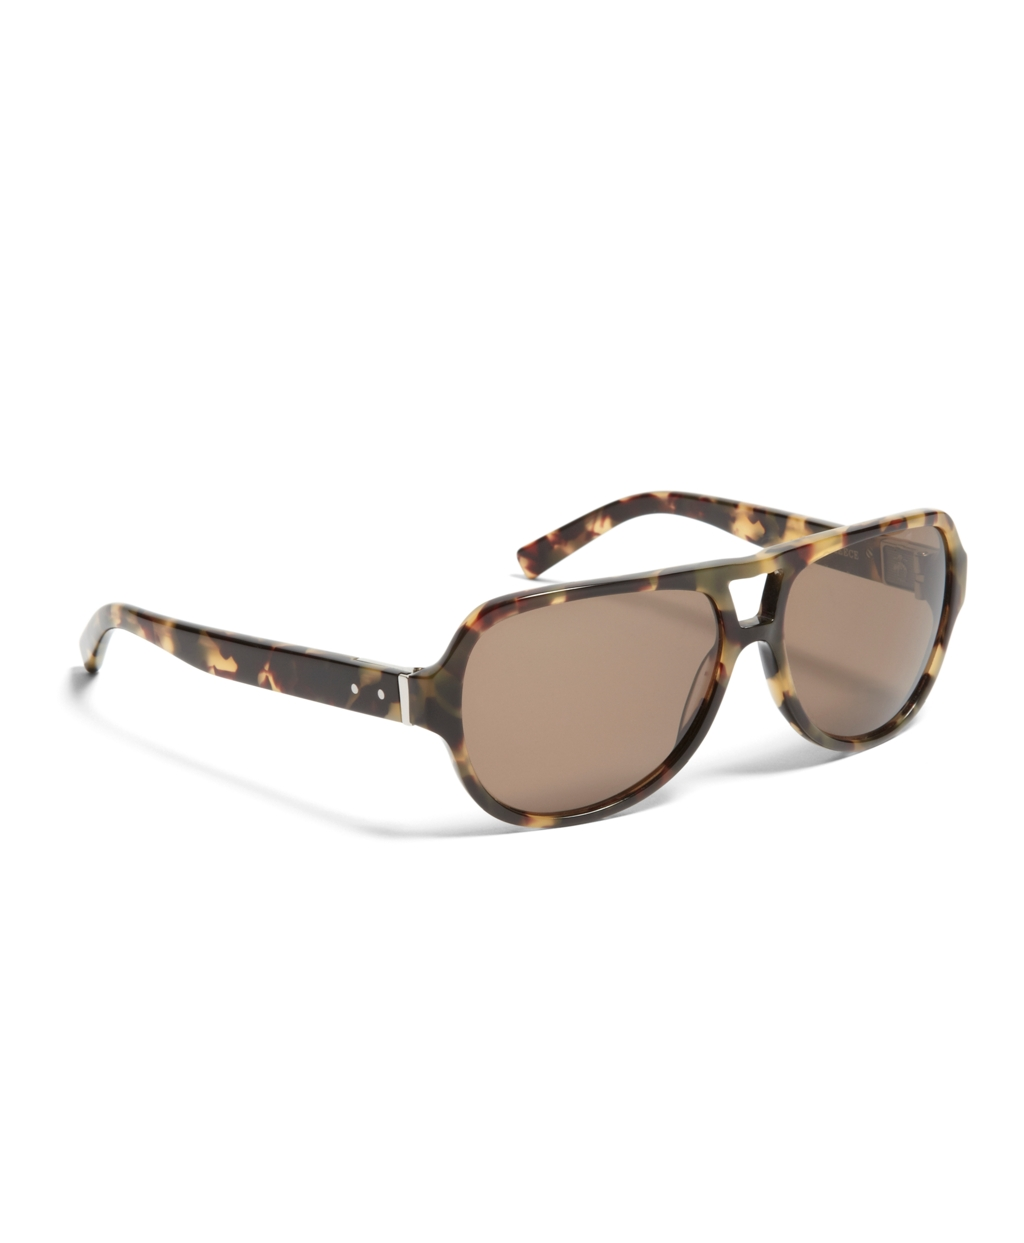 6a9e2bc4c3 Lyst - Brooks Brothers Black Fleece Tortoise Aviator in Brown for Men